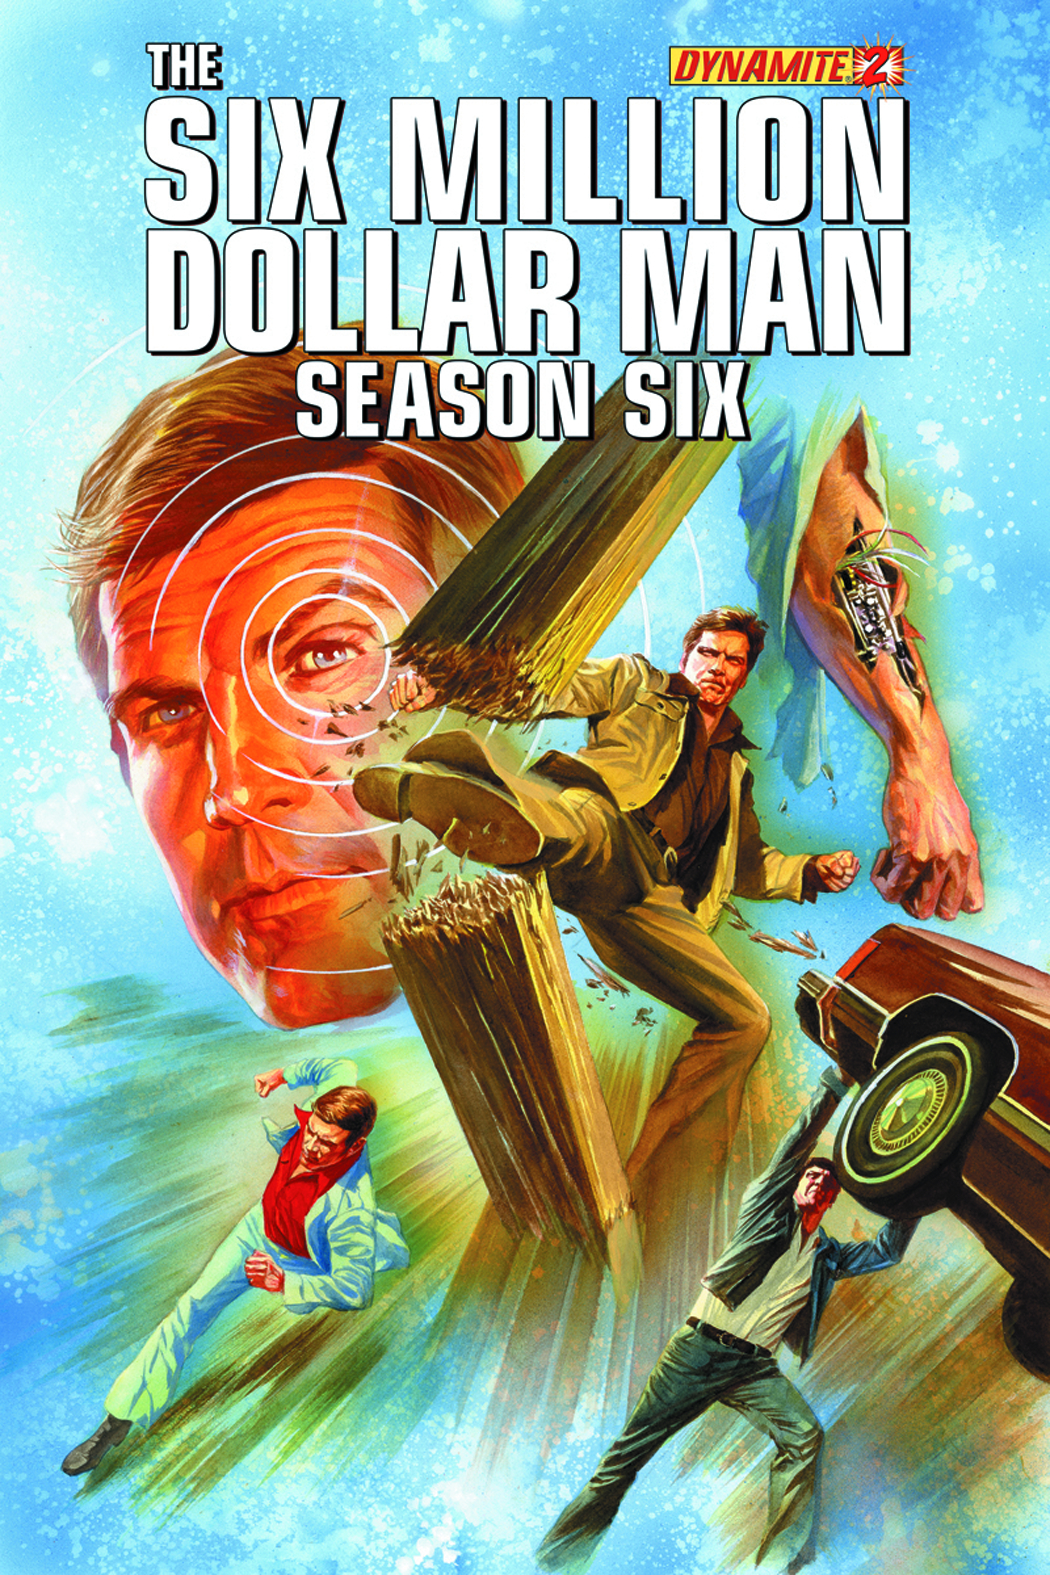 SIX MILLION DOLLAR MAN SEASON 6 #2 35 COPY GOLD SGN INCV